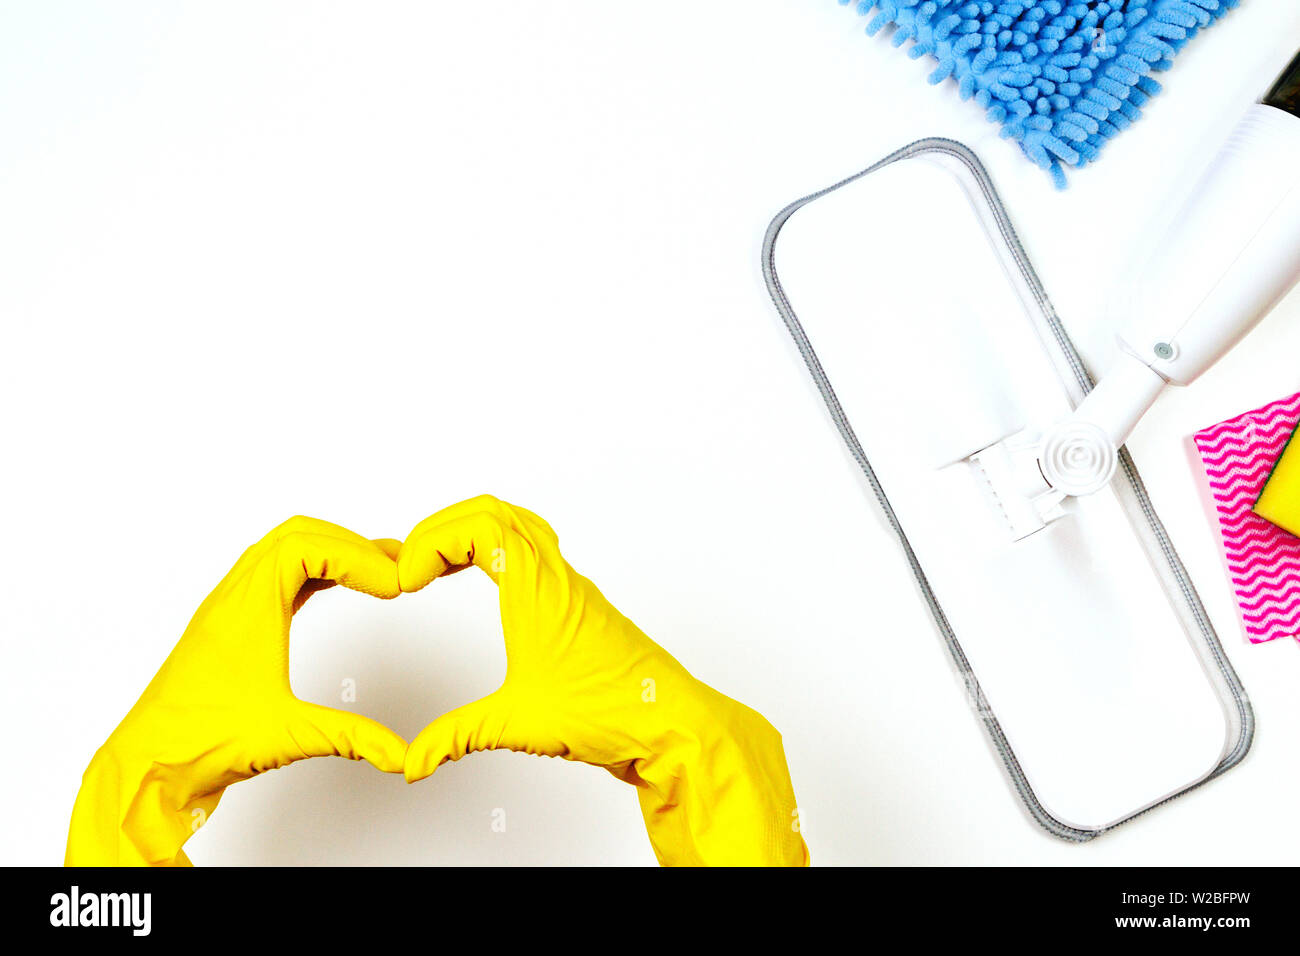 Housework, housekeeping, household, cleaning service concept. Cleaning spray mop, rags, sponges and woman hand with rubber gloves in the form of heart - Stock Image